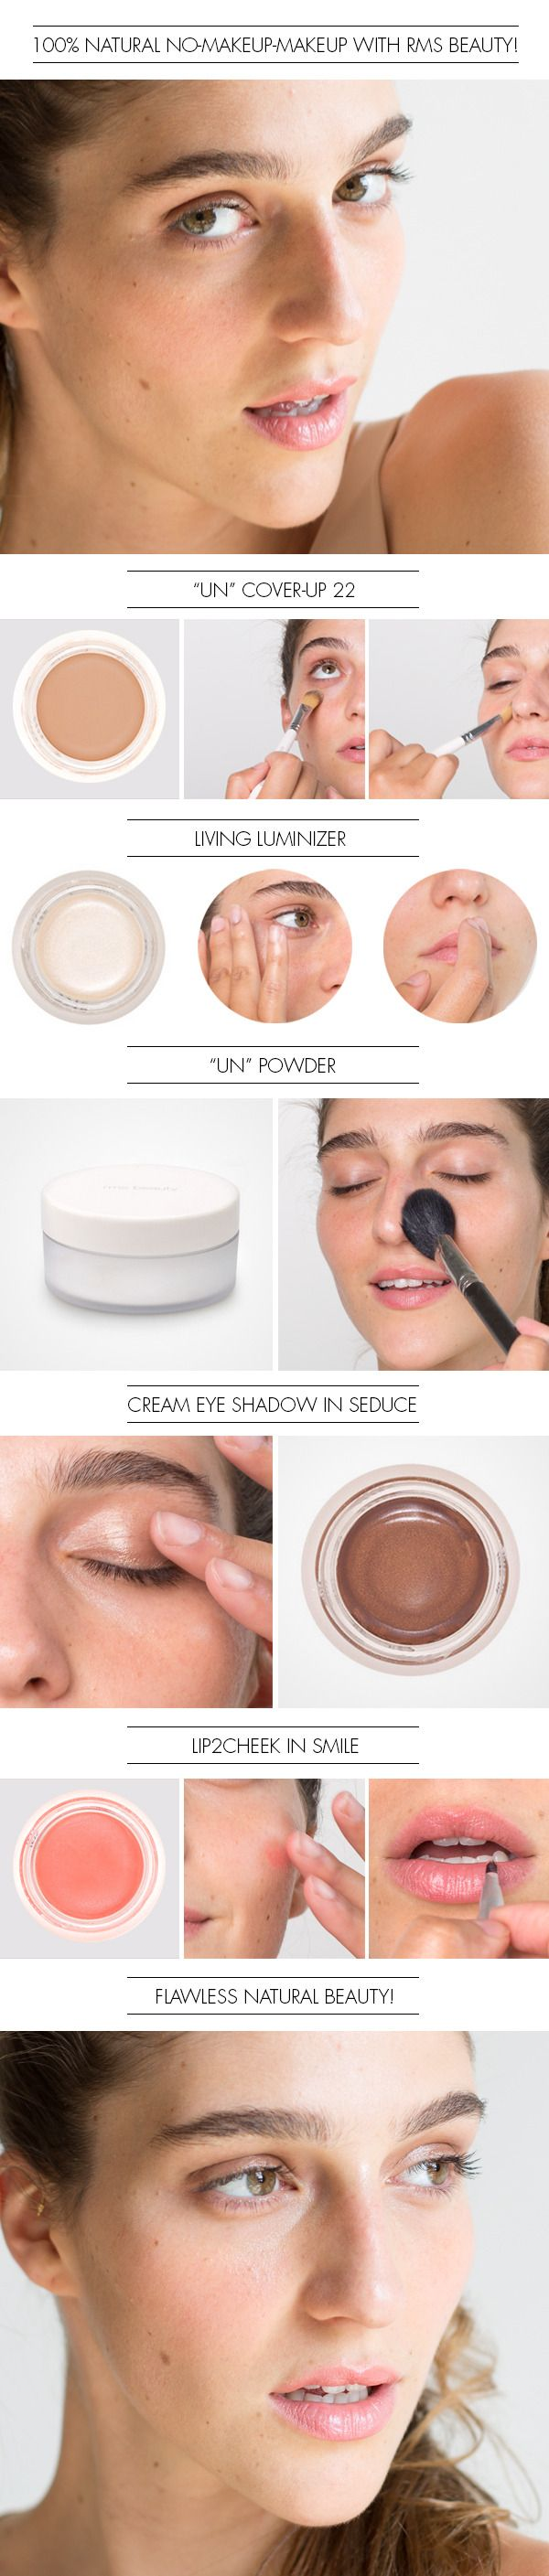 5 Minutes to a Natural, Flawless Face | Beautylish